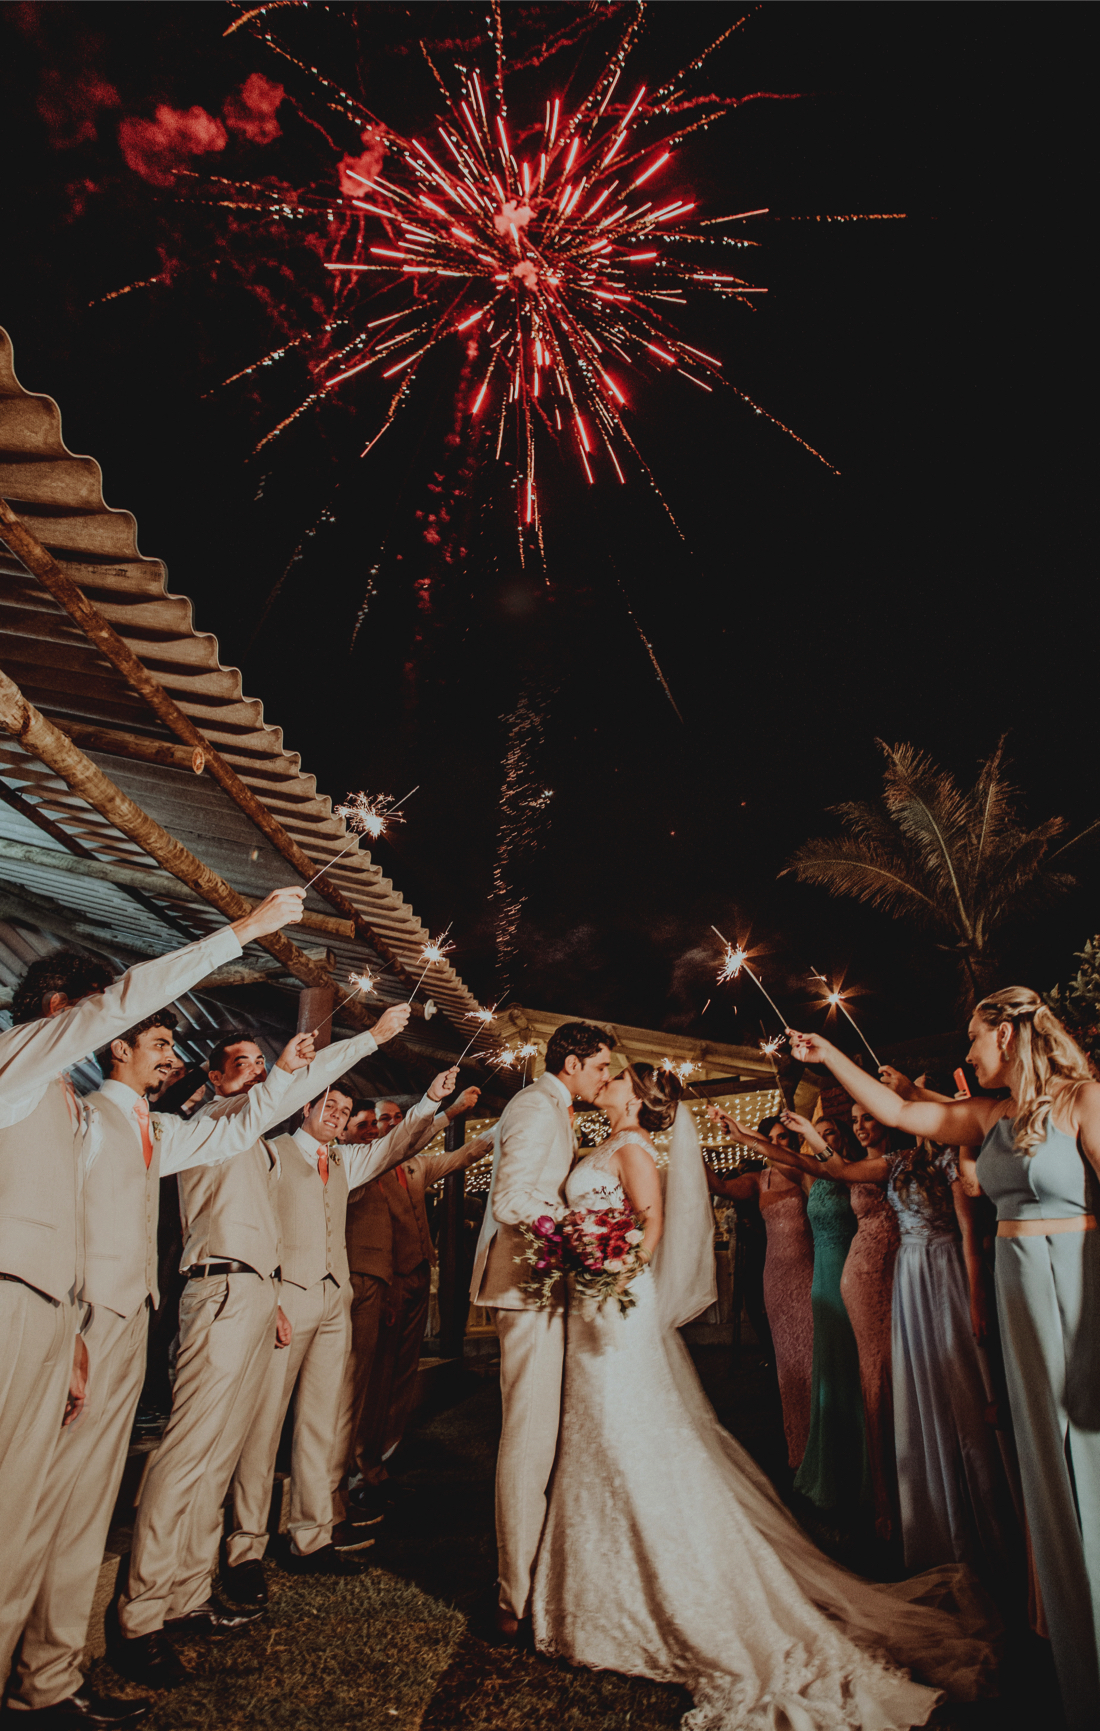 fireworks-wedding-exit-ideas_1.jpg